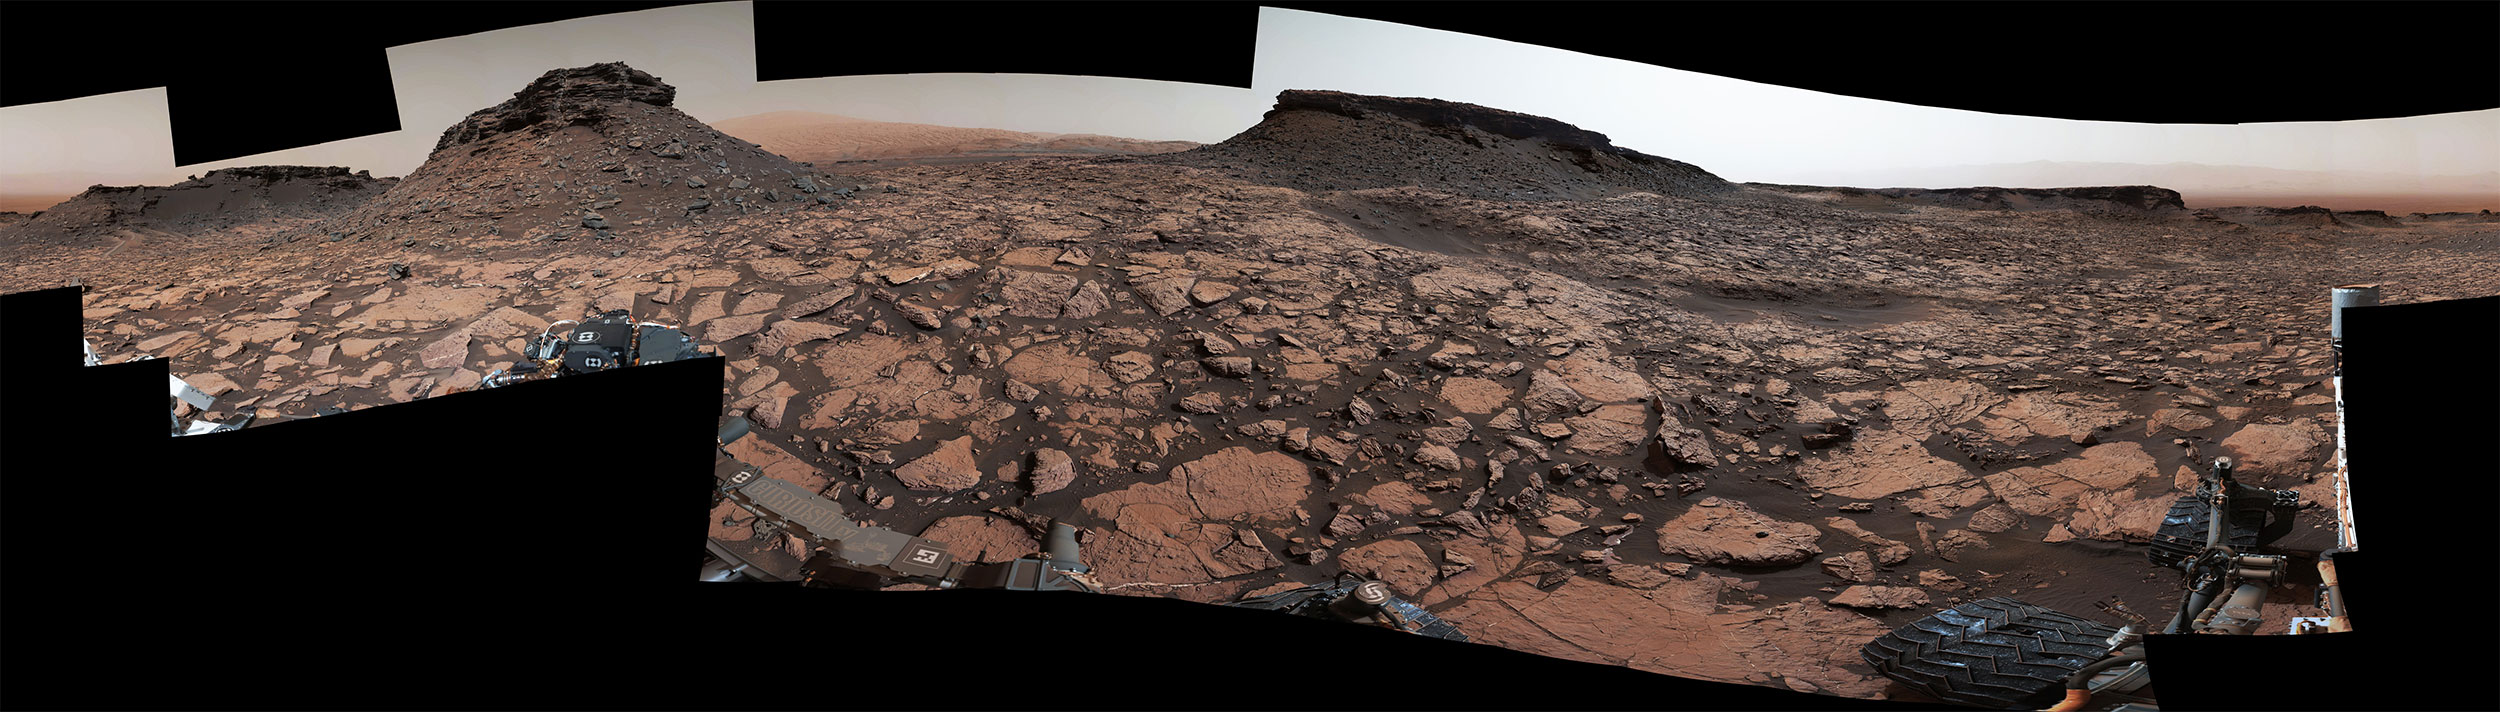 Murray Buttes panoraması. [NASA/JPL-Caltech/MSSS]